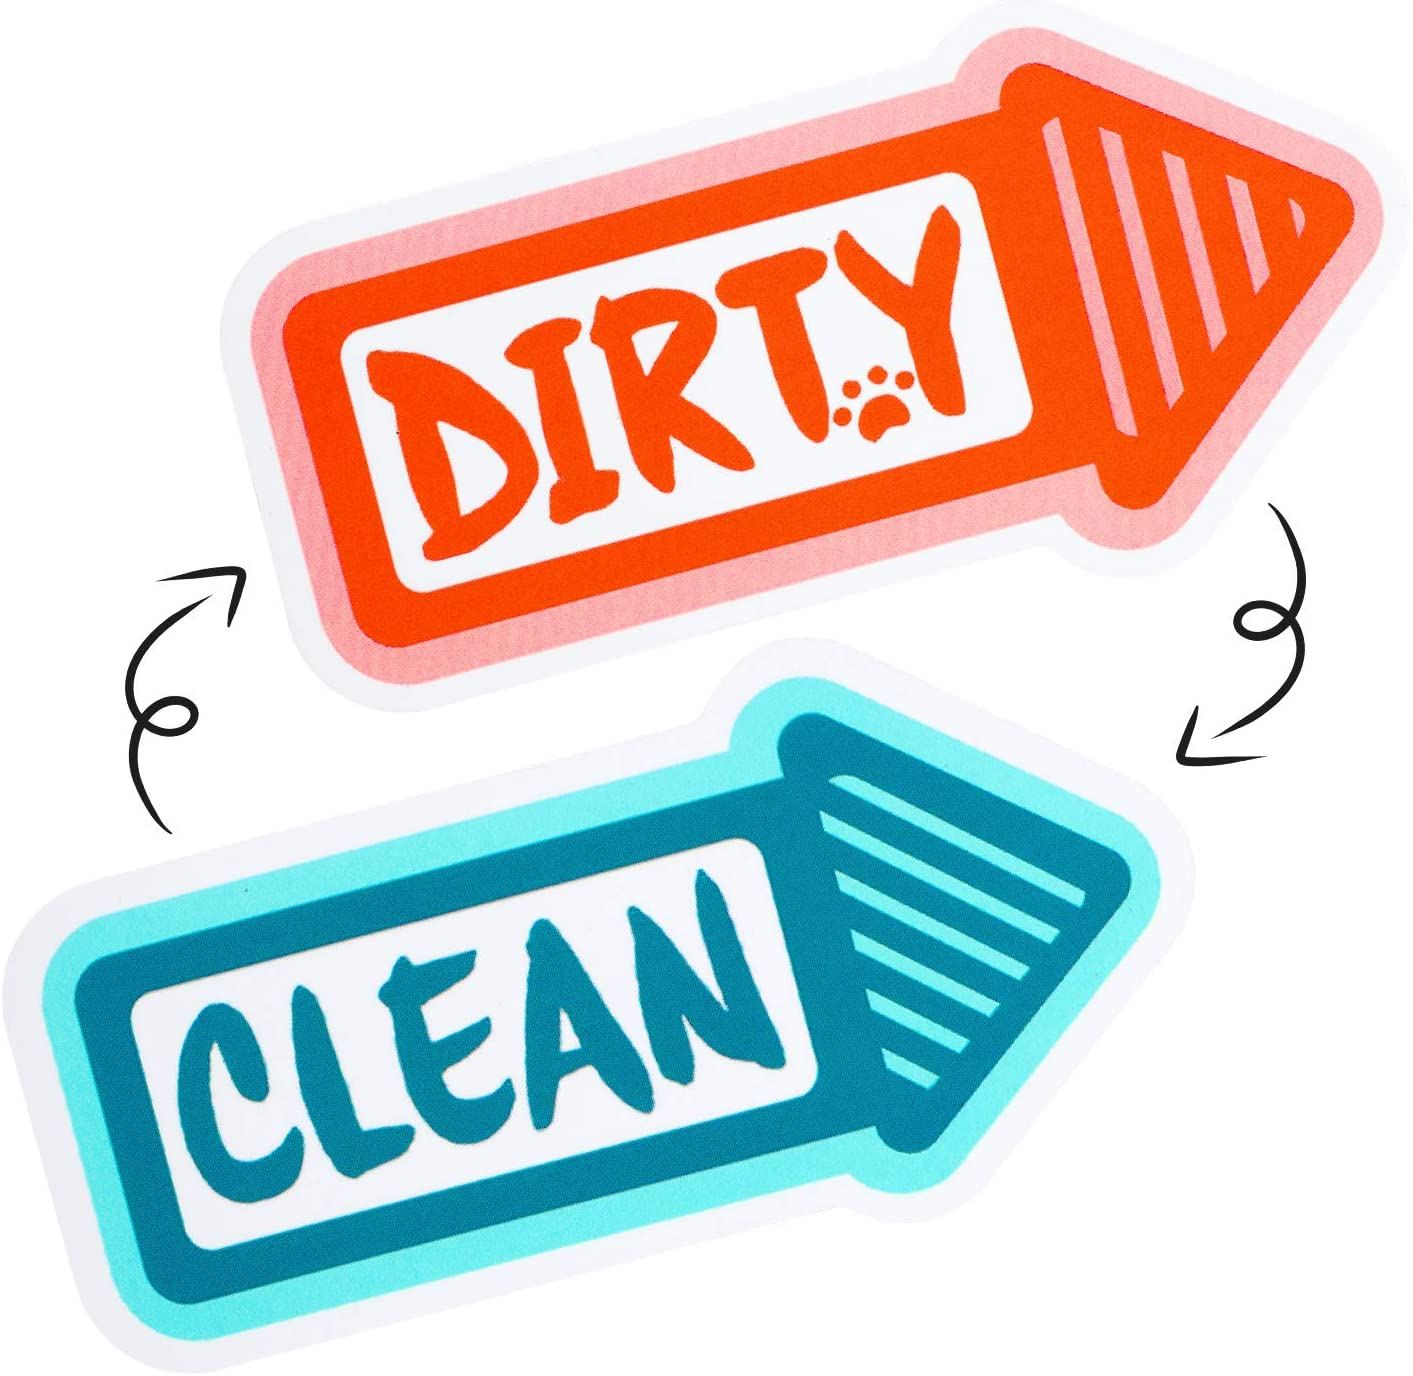 Dishwasher Magnet Clean Dirty Sign,Rareccy Original Design Strongest Magnet Double Sided Flip Dishwasher Sign with Bonus Metal Magnetic Plate Reversible Indicator Dishwasher Magnet for All Dishwasher